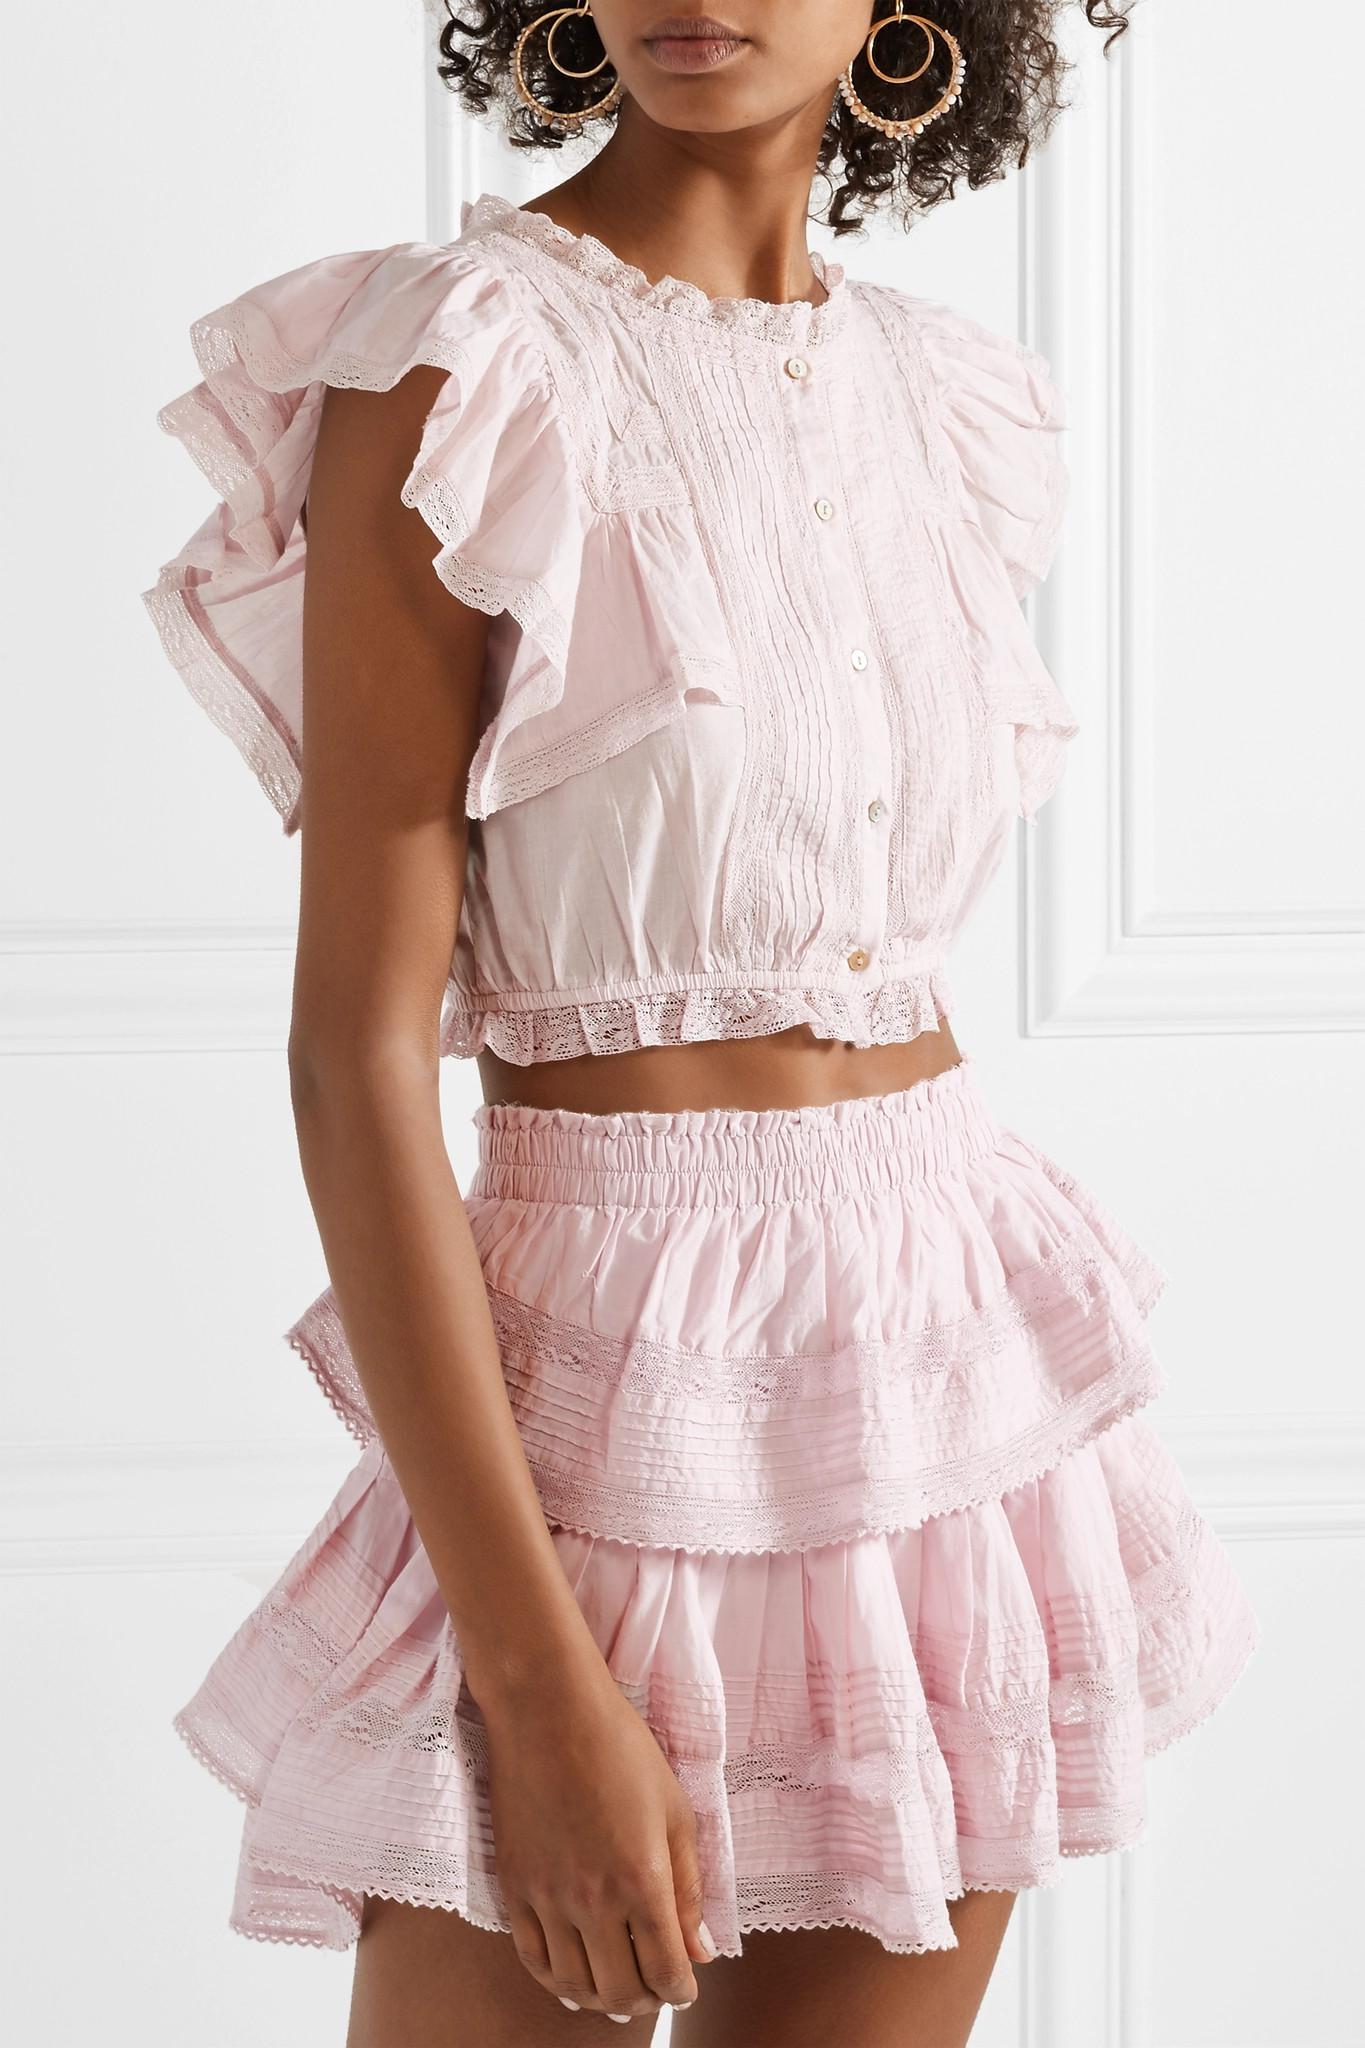 Visit New Cheap Online Nora Ruffled Lace-trimmed Cotton-voile Top - Lavender LoveShackFancy Discount Order Free Shipping Explore TQIEdJcF